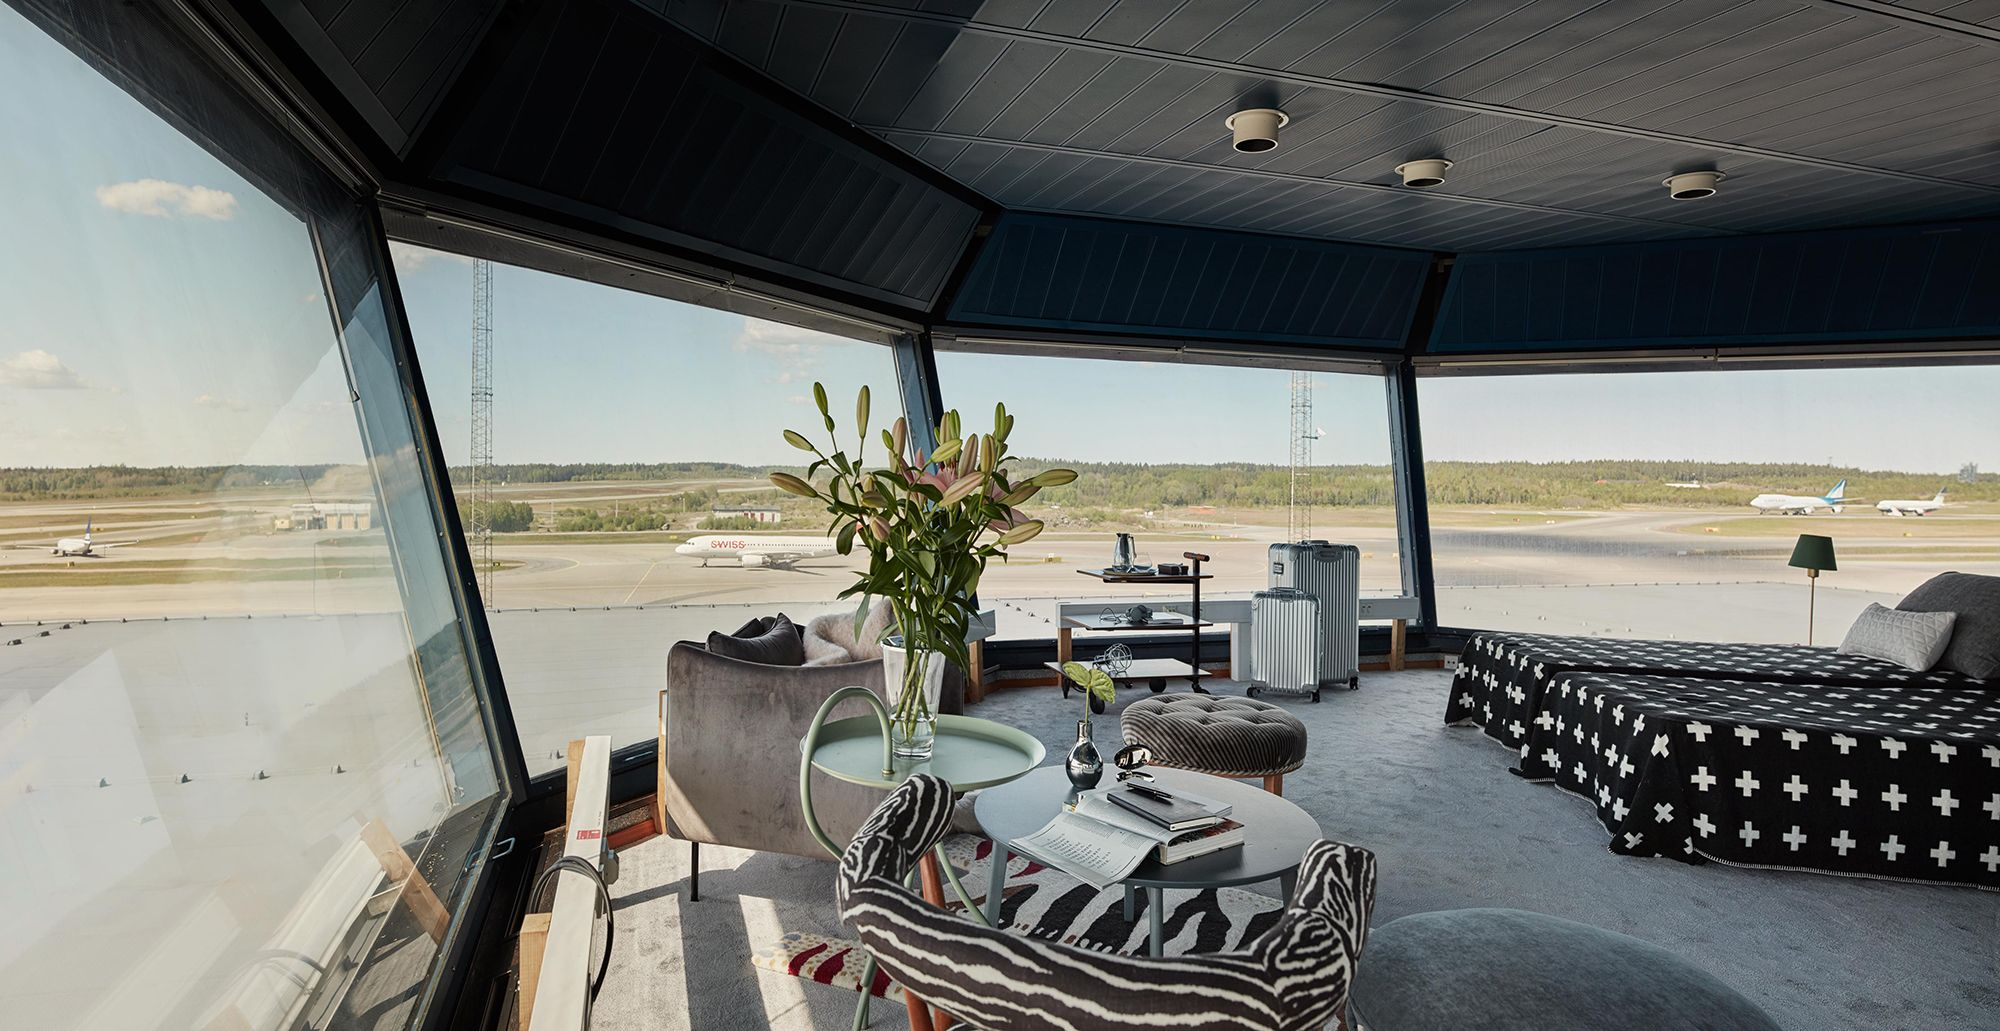 amazon kitchen island charlotte cabinets arlanda airport in stockholm transformed air-control tower ...